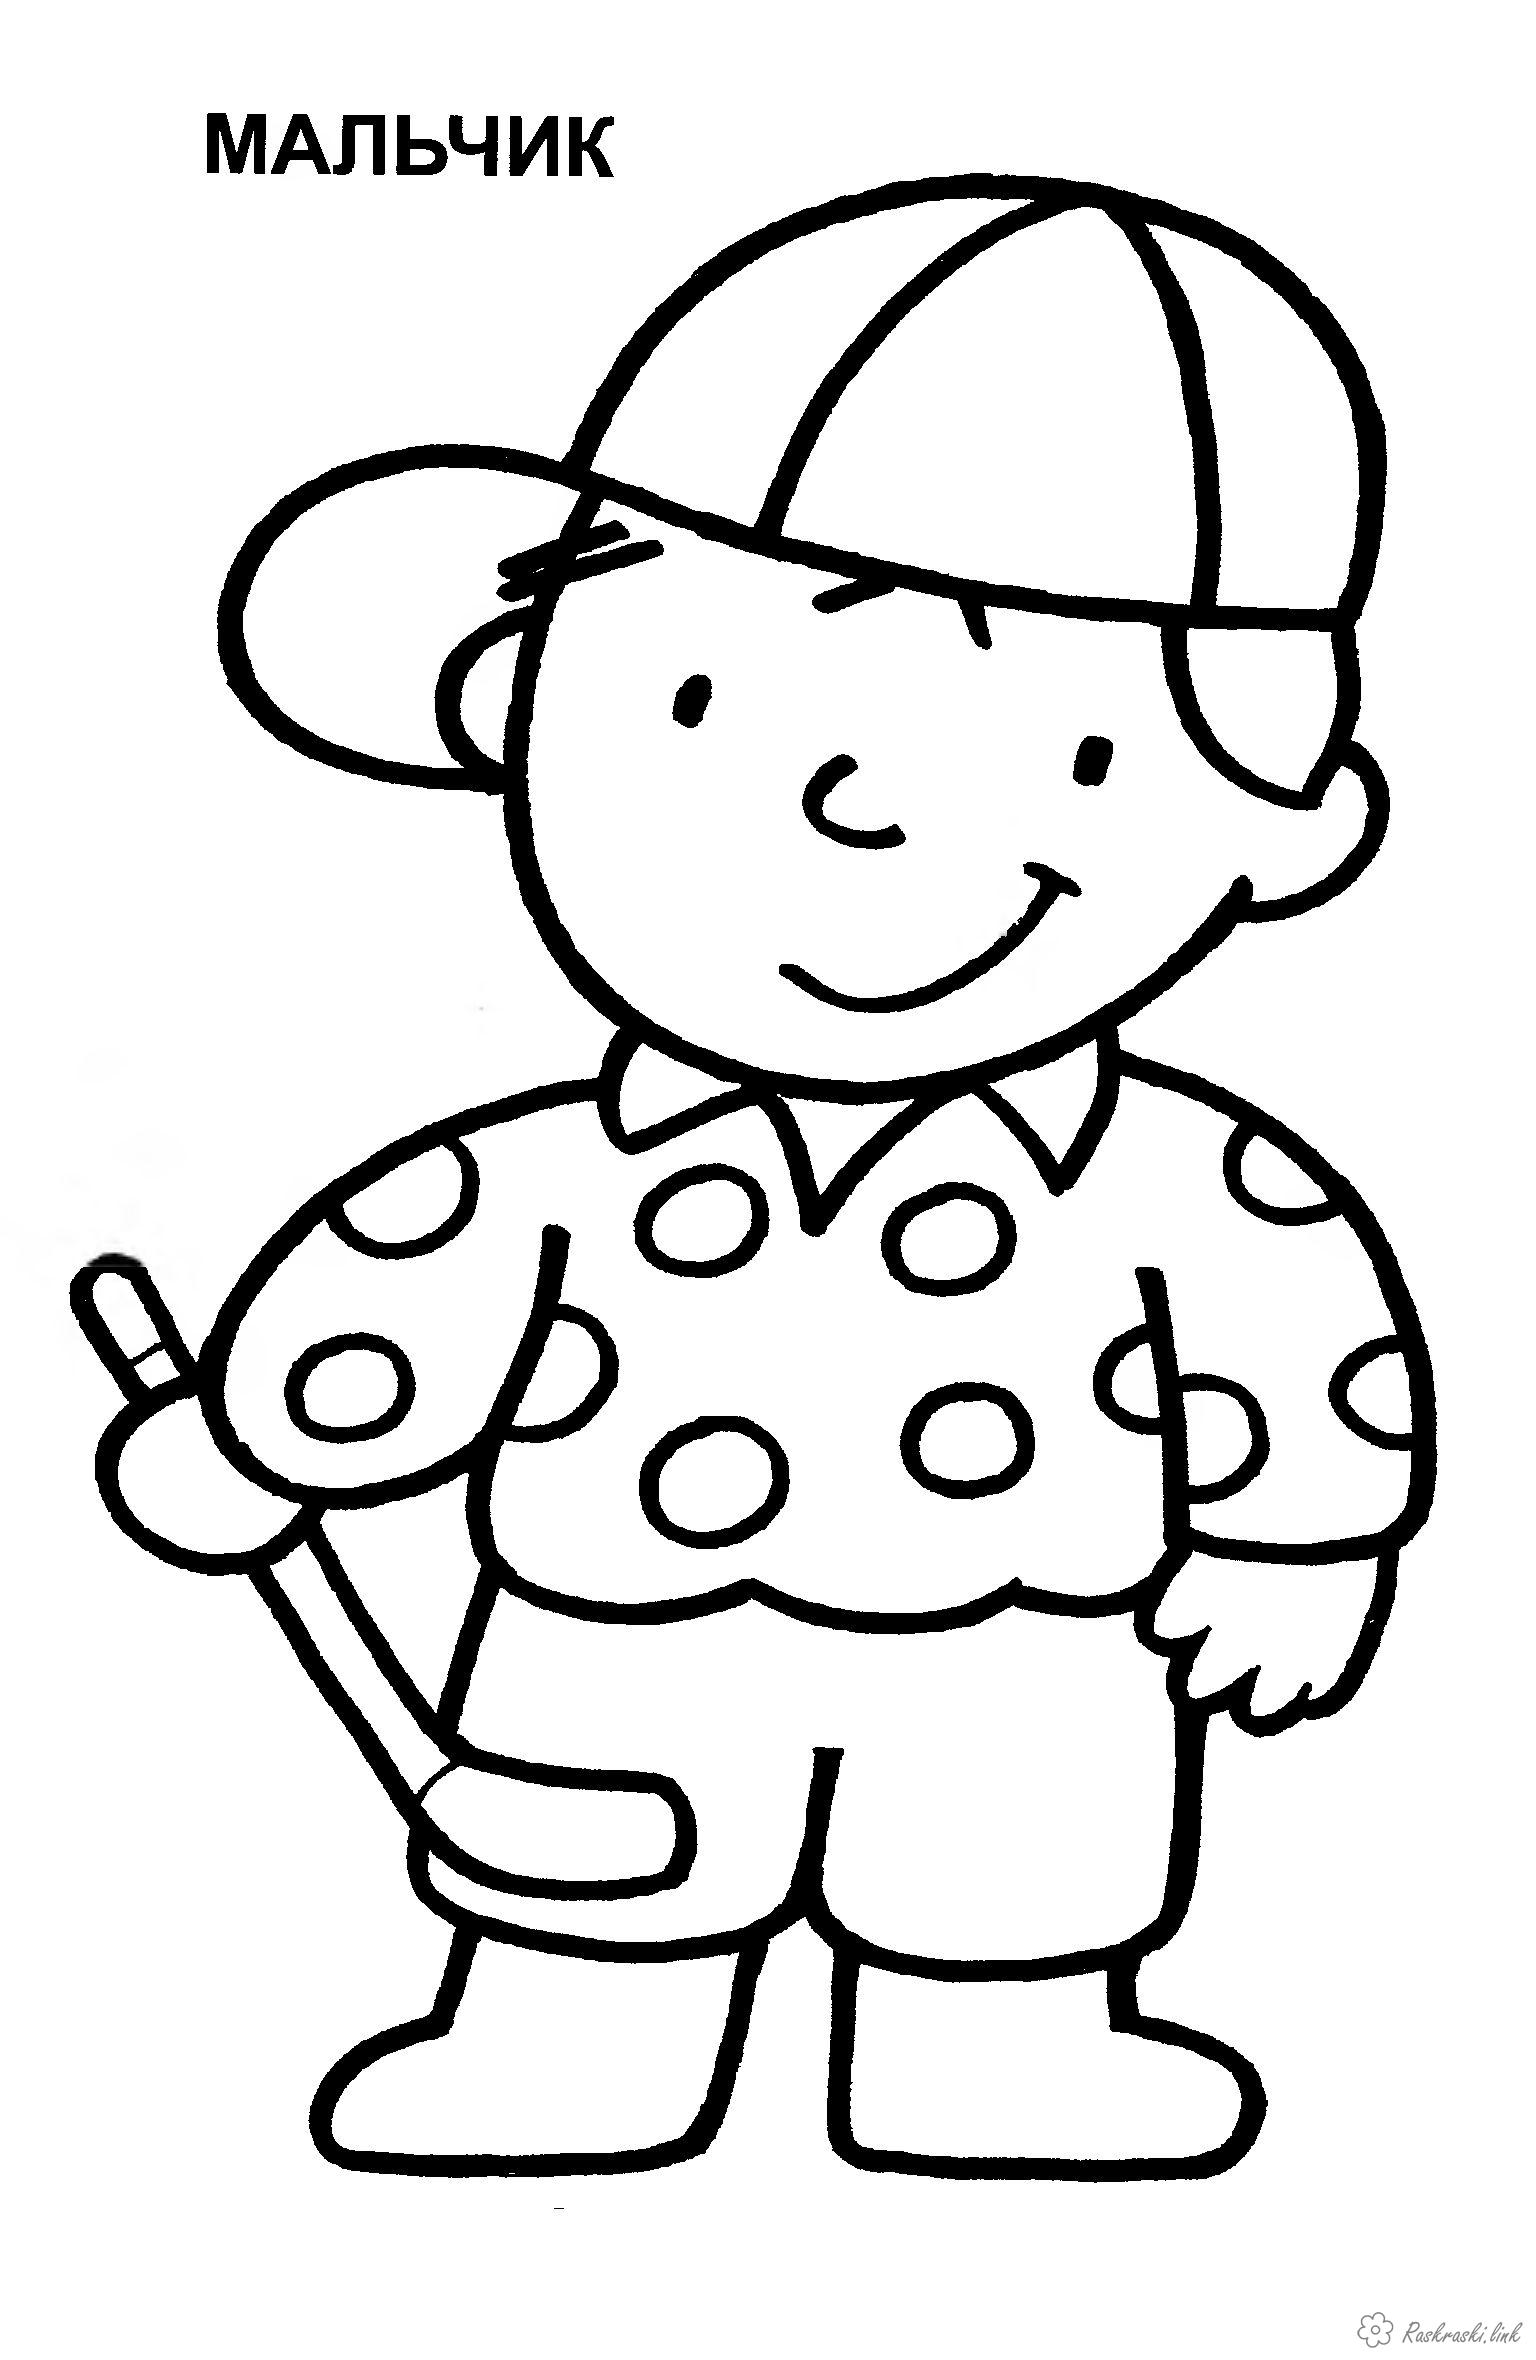 Coloring Simple coloring pages for kids Children coloring pages boy